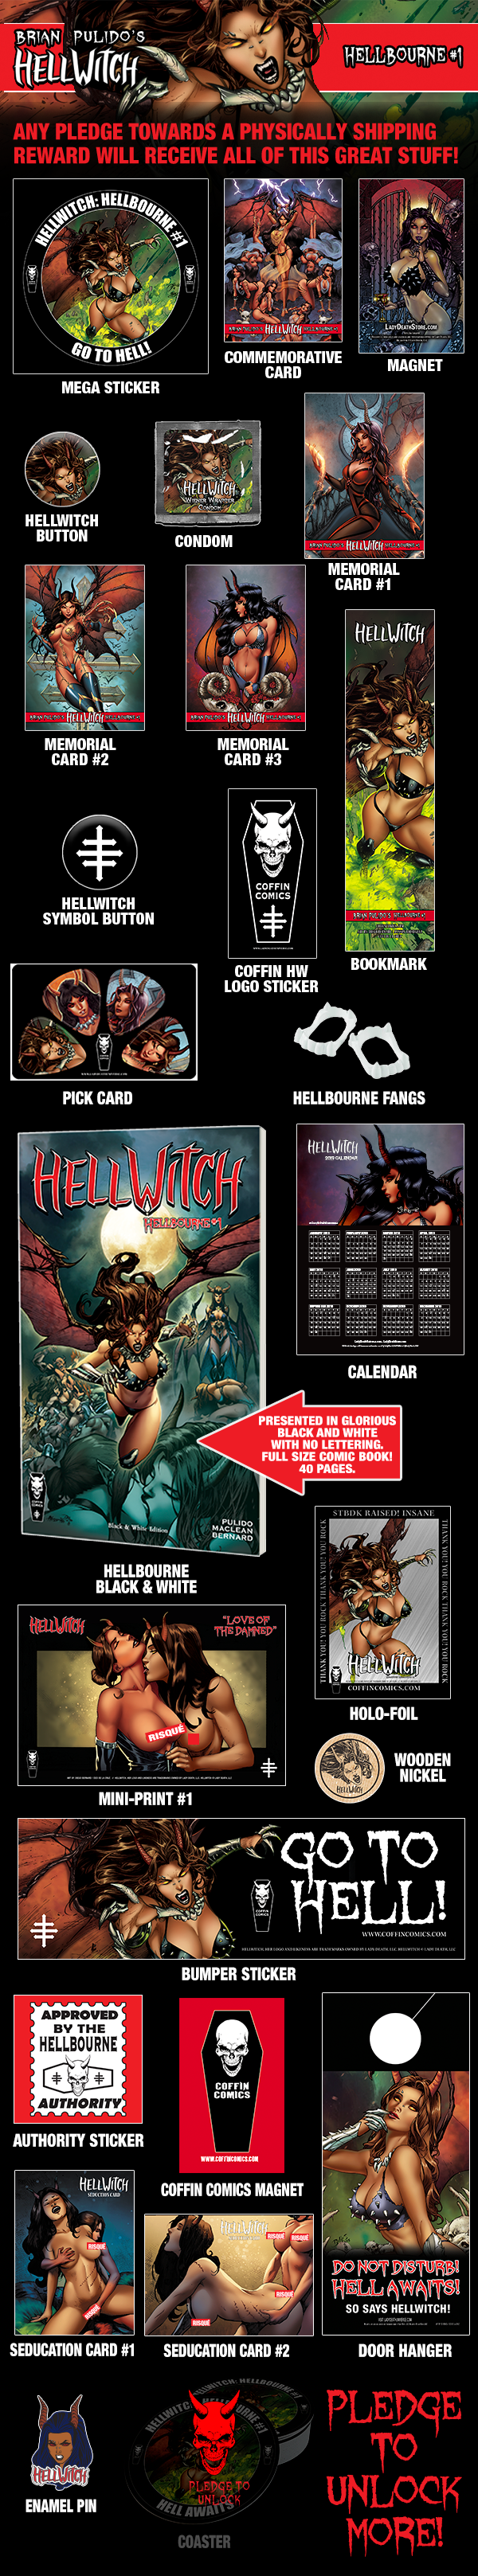 All stretch goal incentives unlocked to $150,000!